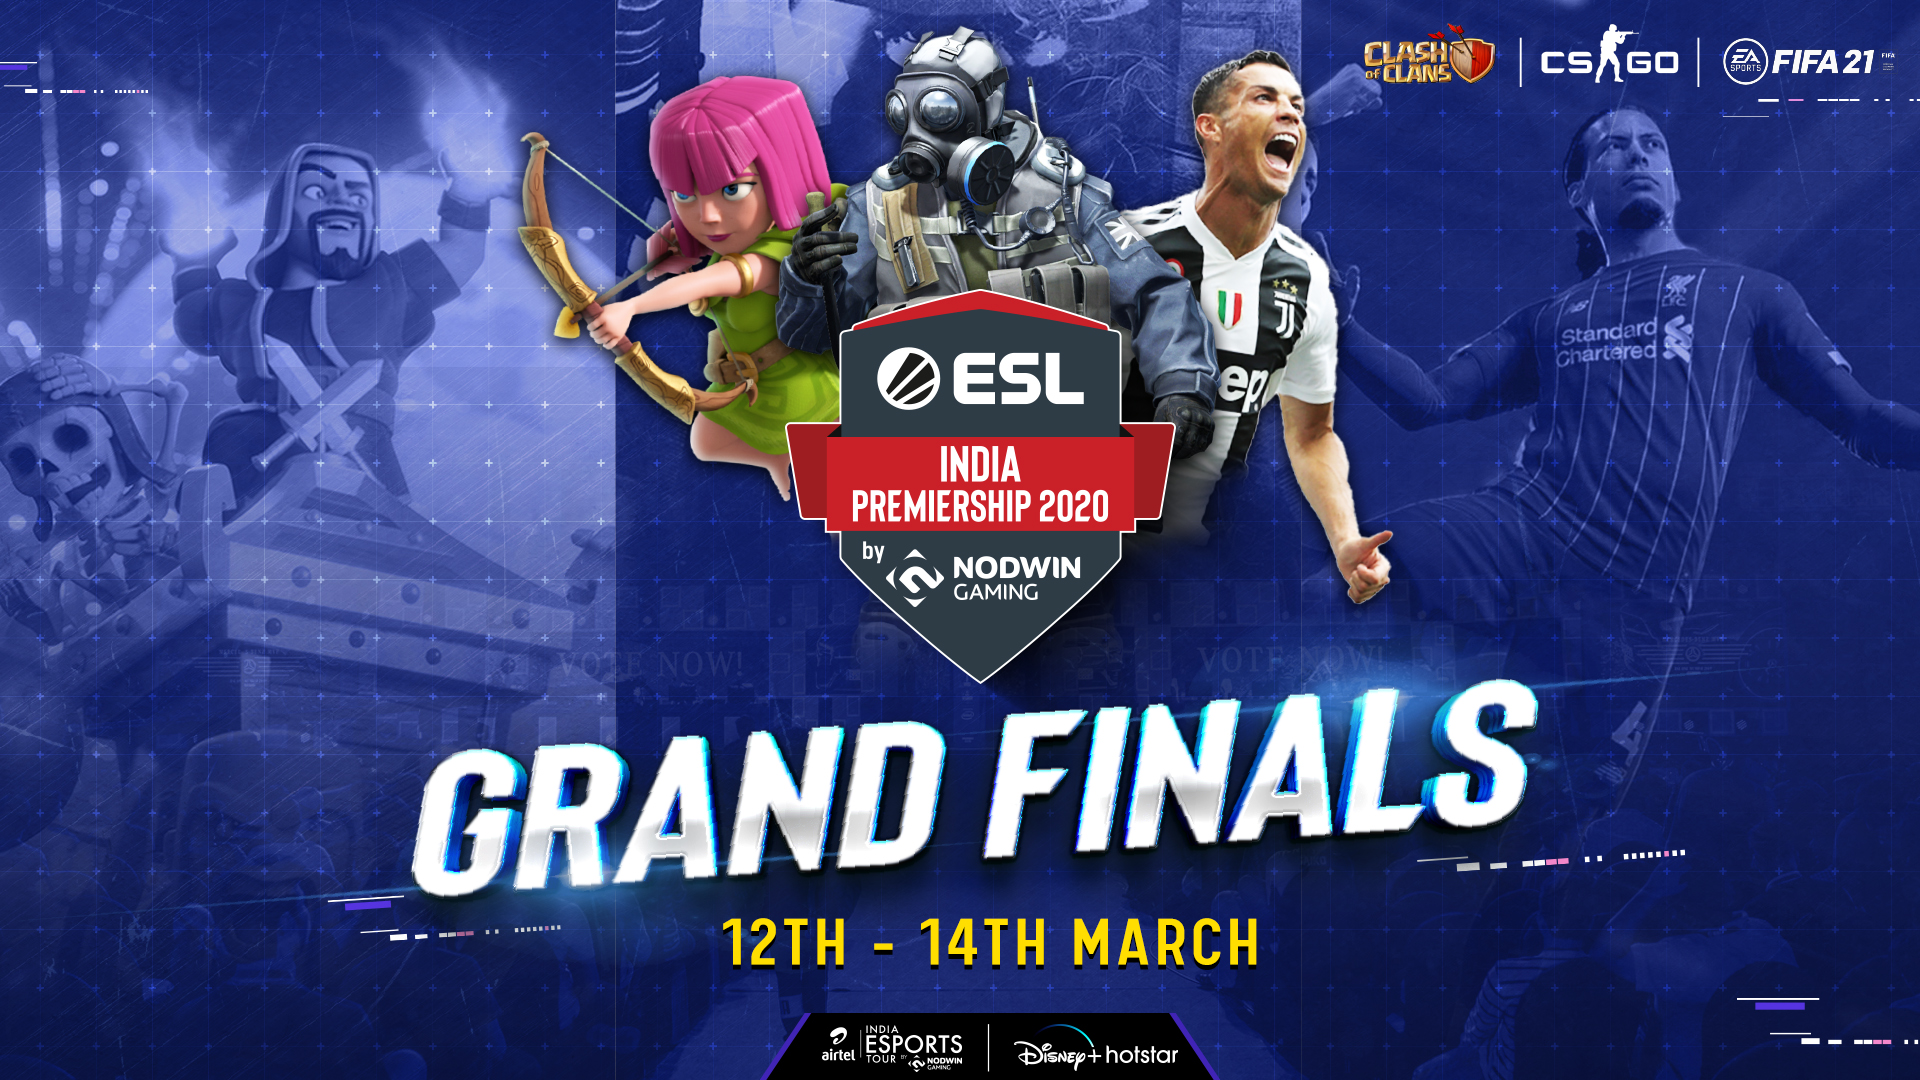 grand-finale-of-the-winter-season-of-nodwin-gaming's-esl-india-premiership-to-stream-on-disney+hotstar-from-march-12-14,-2021